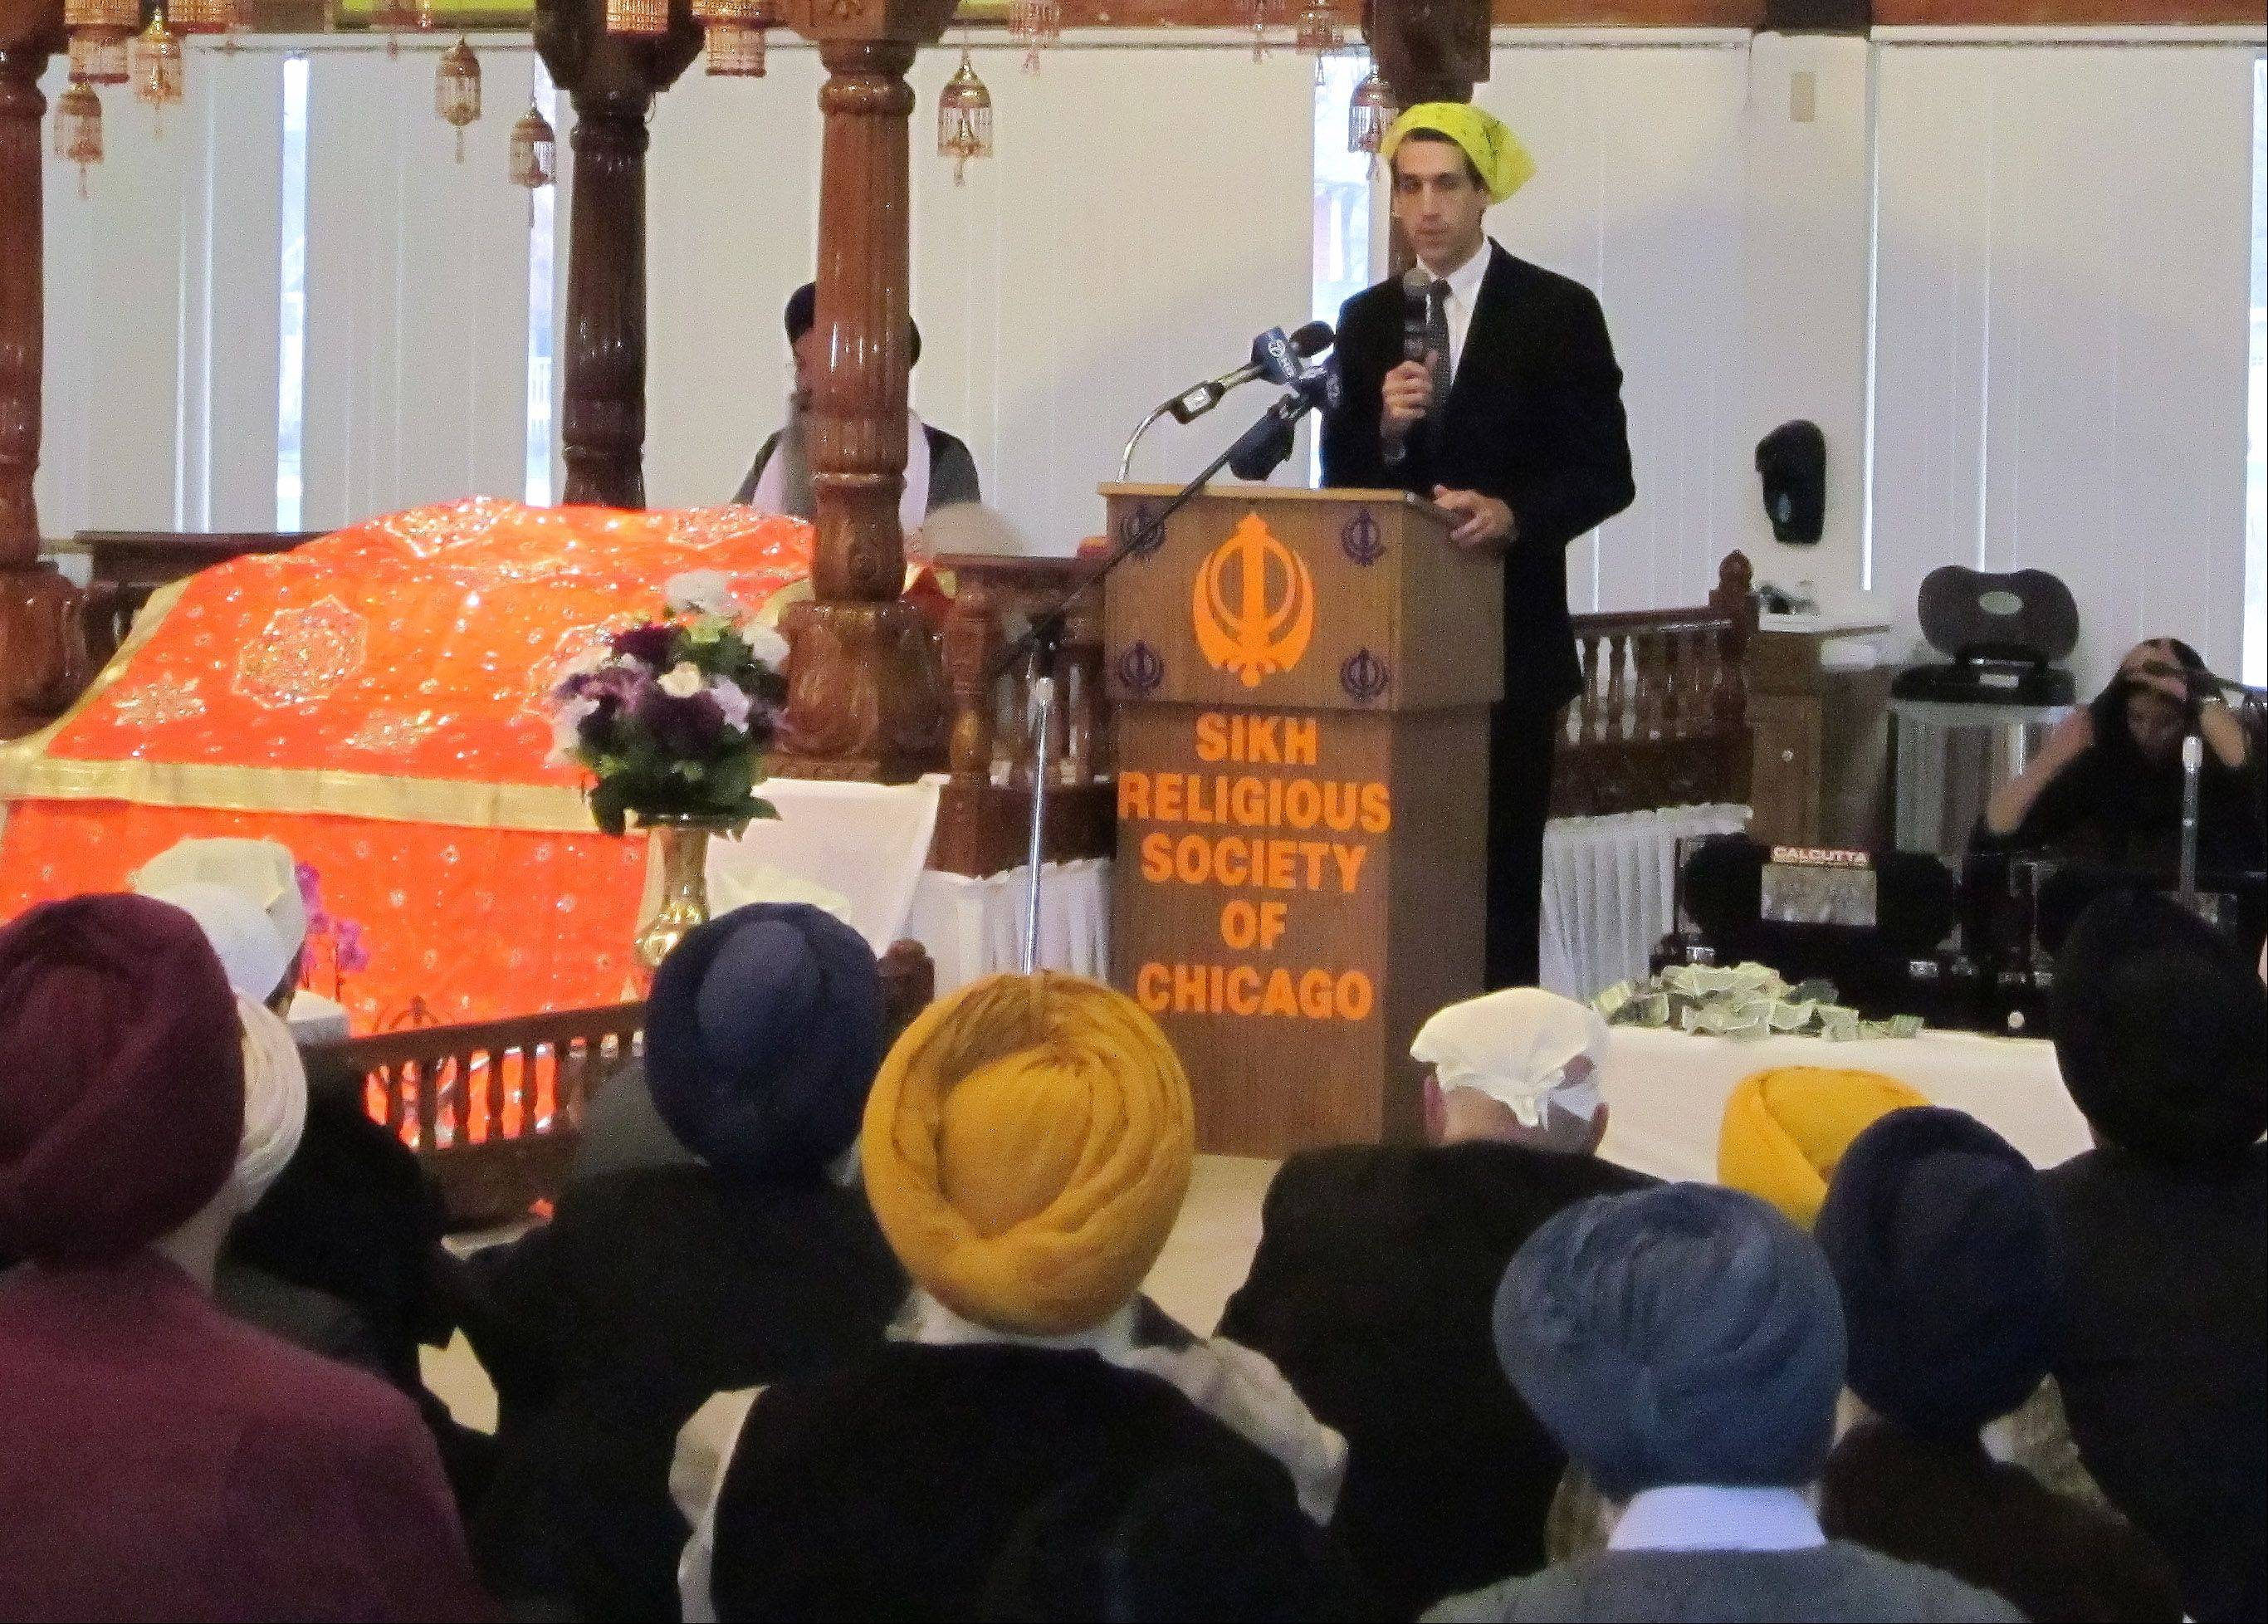 State Rep. Daniel Biss is the chief sponsor of House Resolution 1193, which addresses the violent attacks on Sikh Americans, Muslim Americans and other minorities, as well as denounces hate crimes and hateful political rhetoric. Biss spoke Sunday during a ceremony at the Sikh Religious Society in Palatine.